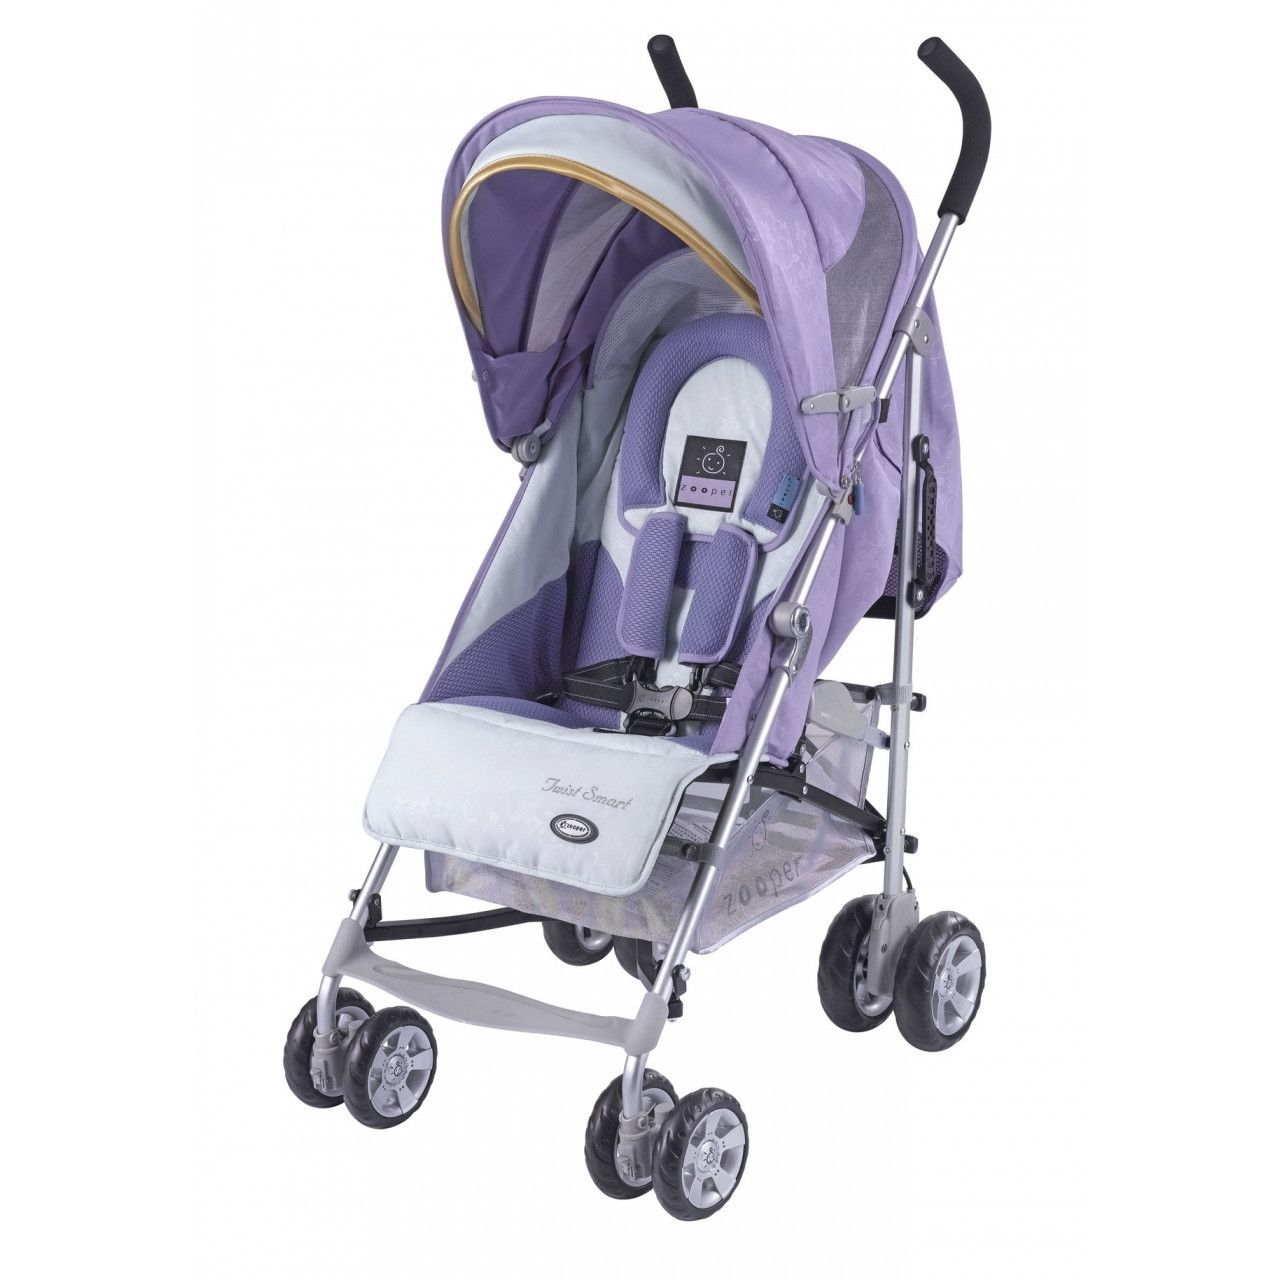 Zooper Twist Smart Umbrella Stroller Lavender Stroller